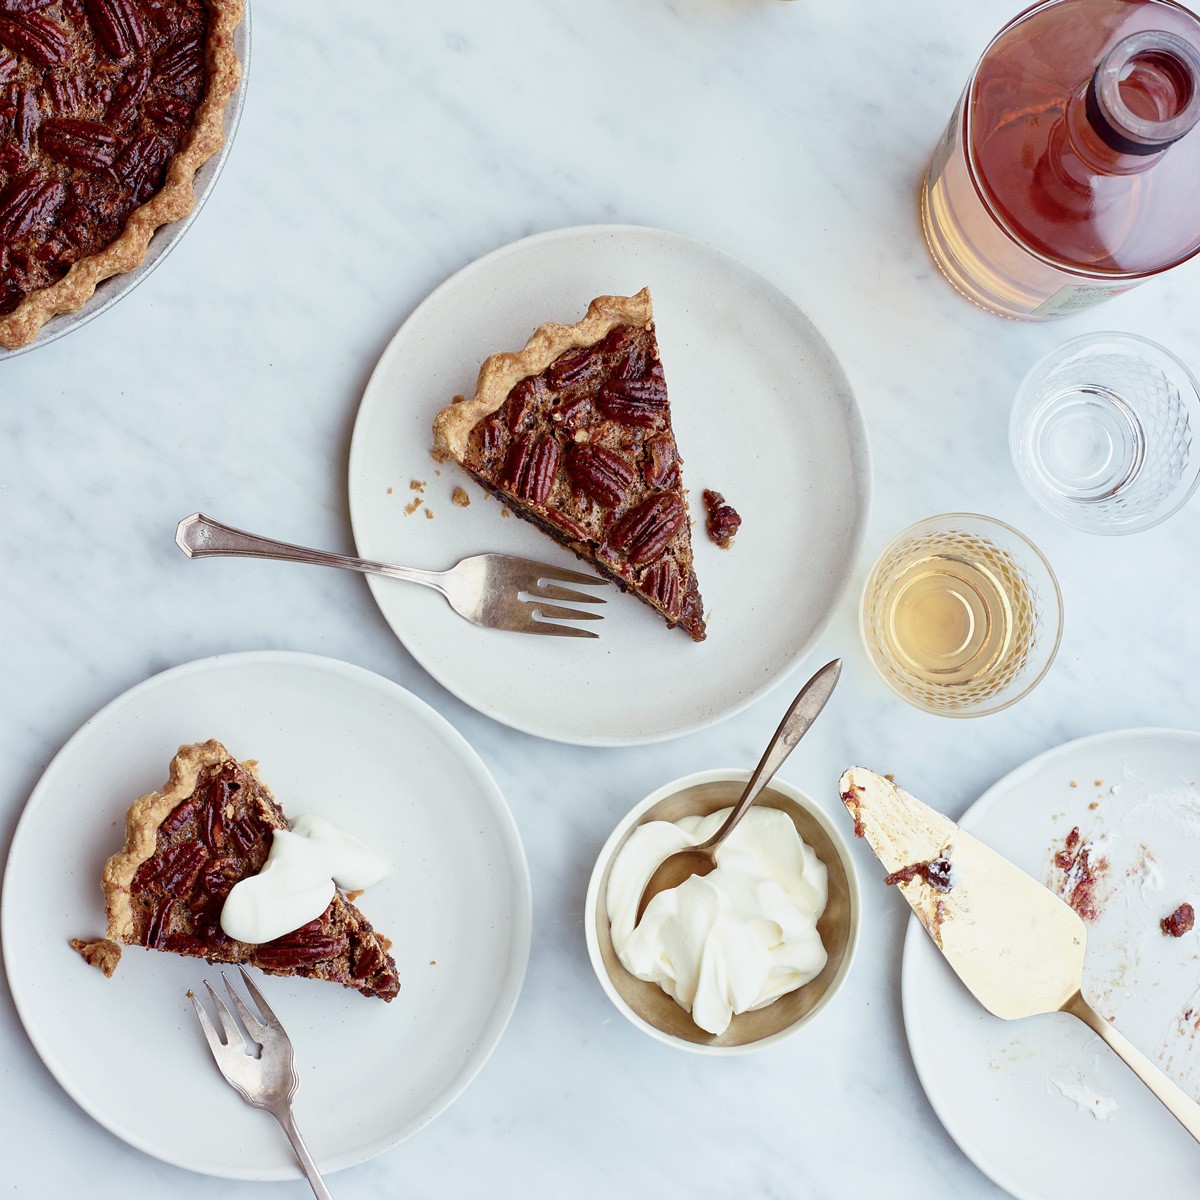 How To Make Maura Kilpatrick's Espresso-Laced Pecan Pie